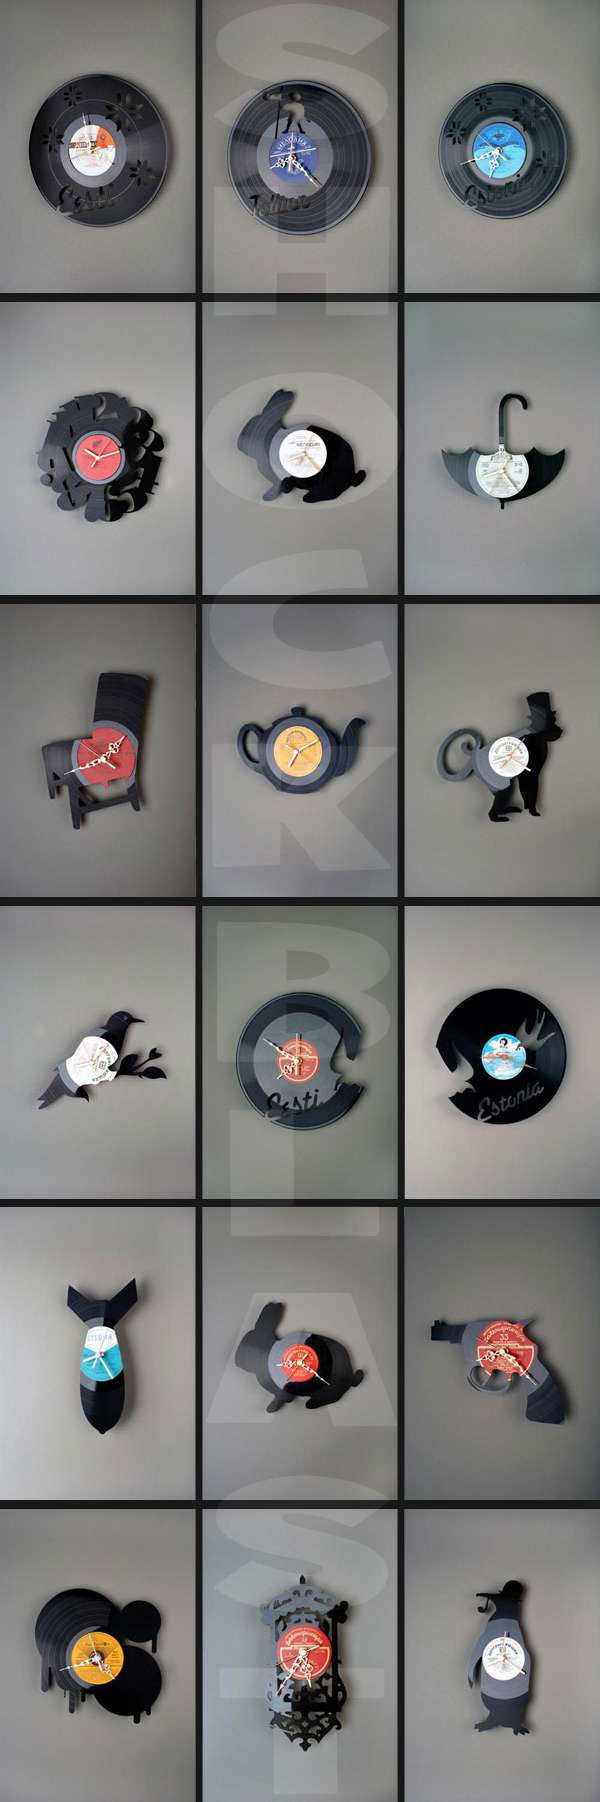 Wall Vinyl Clocks by Pavel Sidorenko @ ShockBlast